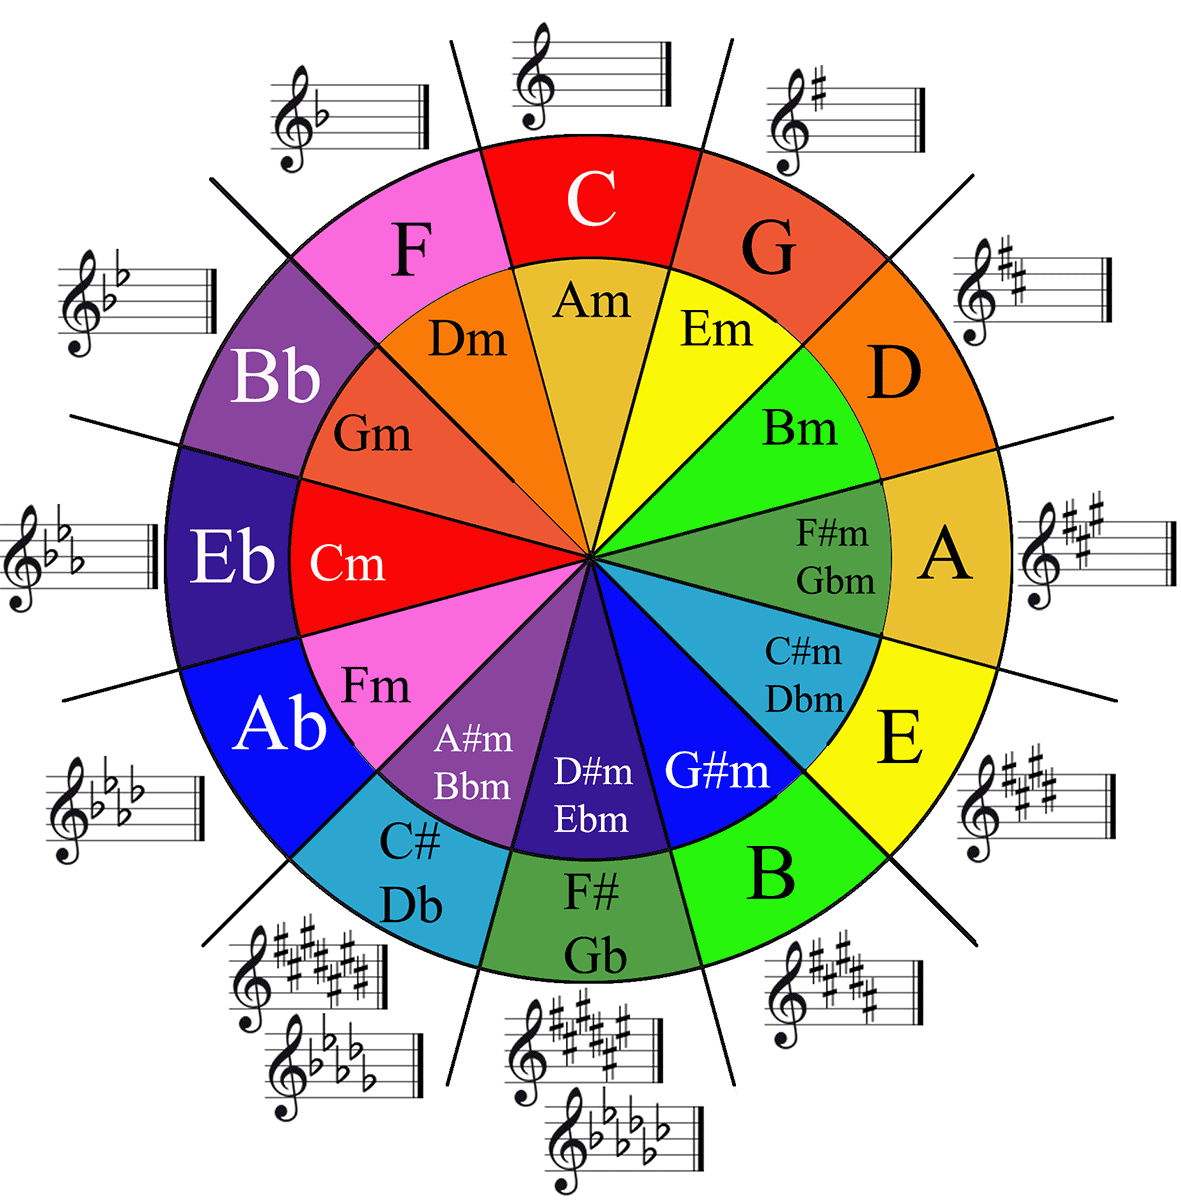 It's just a picture of Agile Printable Circle of Fifths Wheel